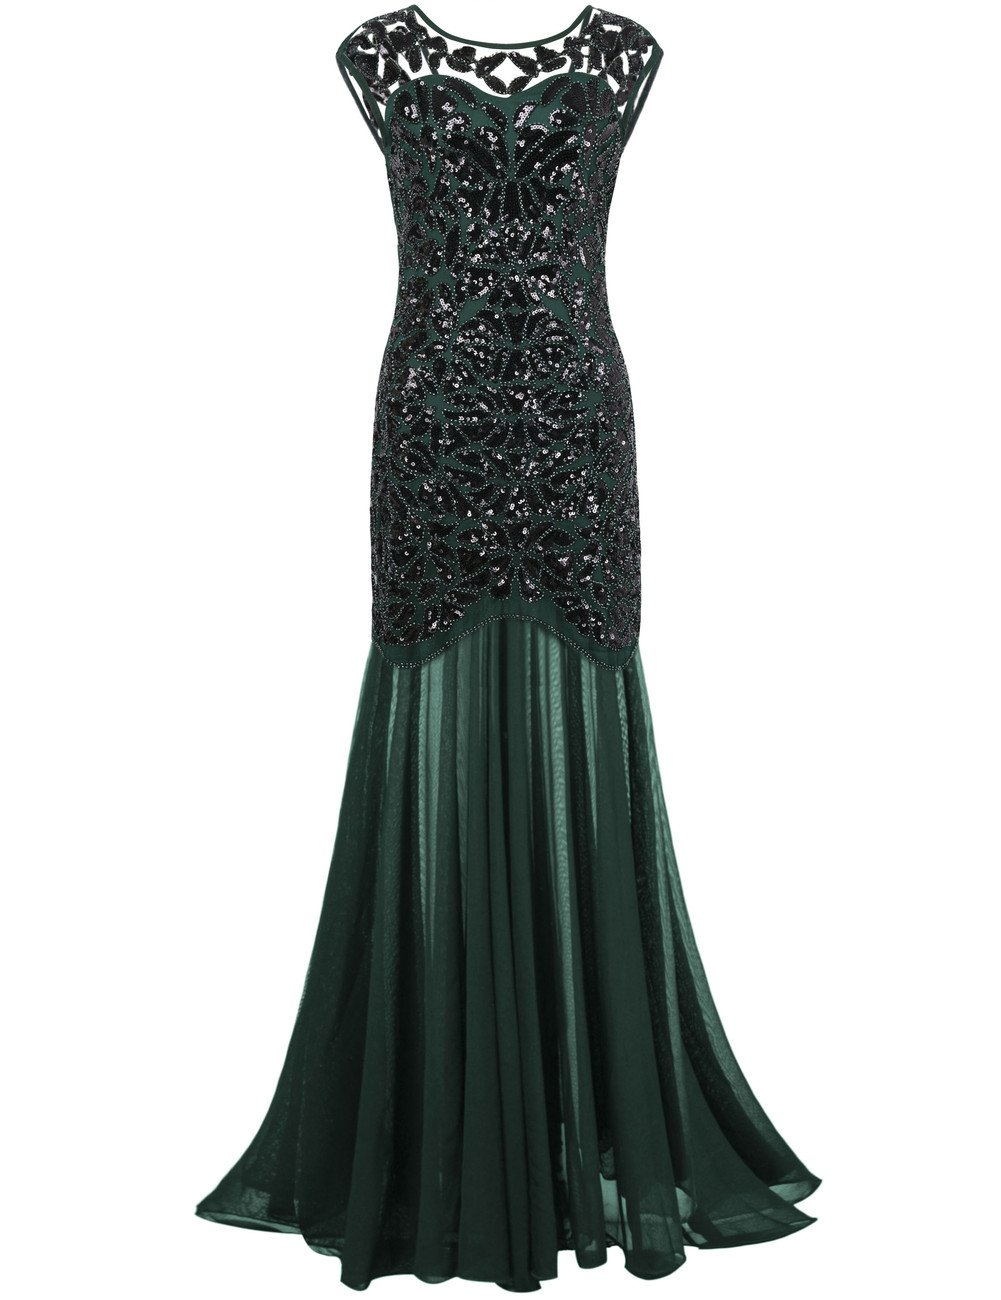 Available at Amazon: kayamiya Women's 1920s Evening Dress Formal Beaded Sequin Maxi Long Flapper Prom Ball Gown